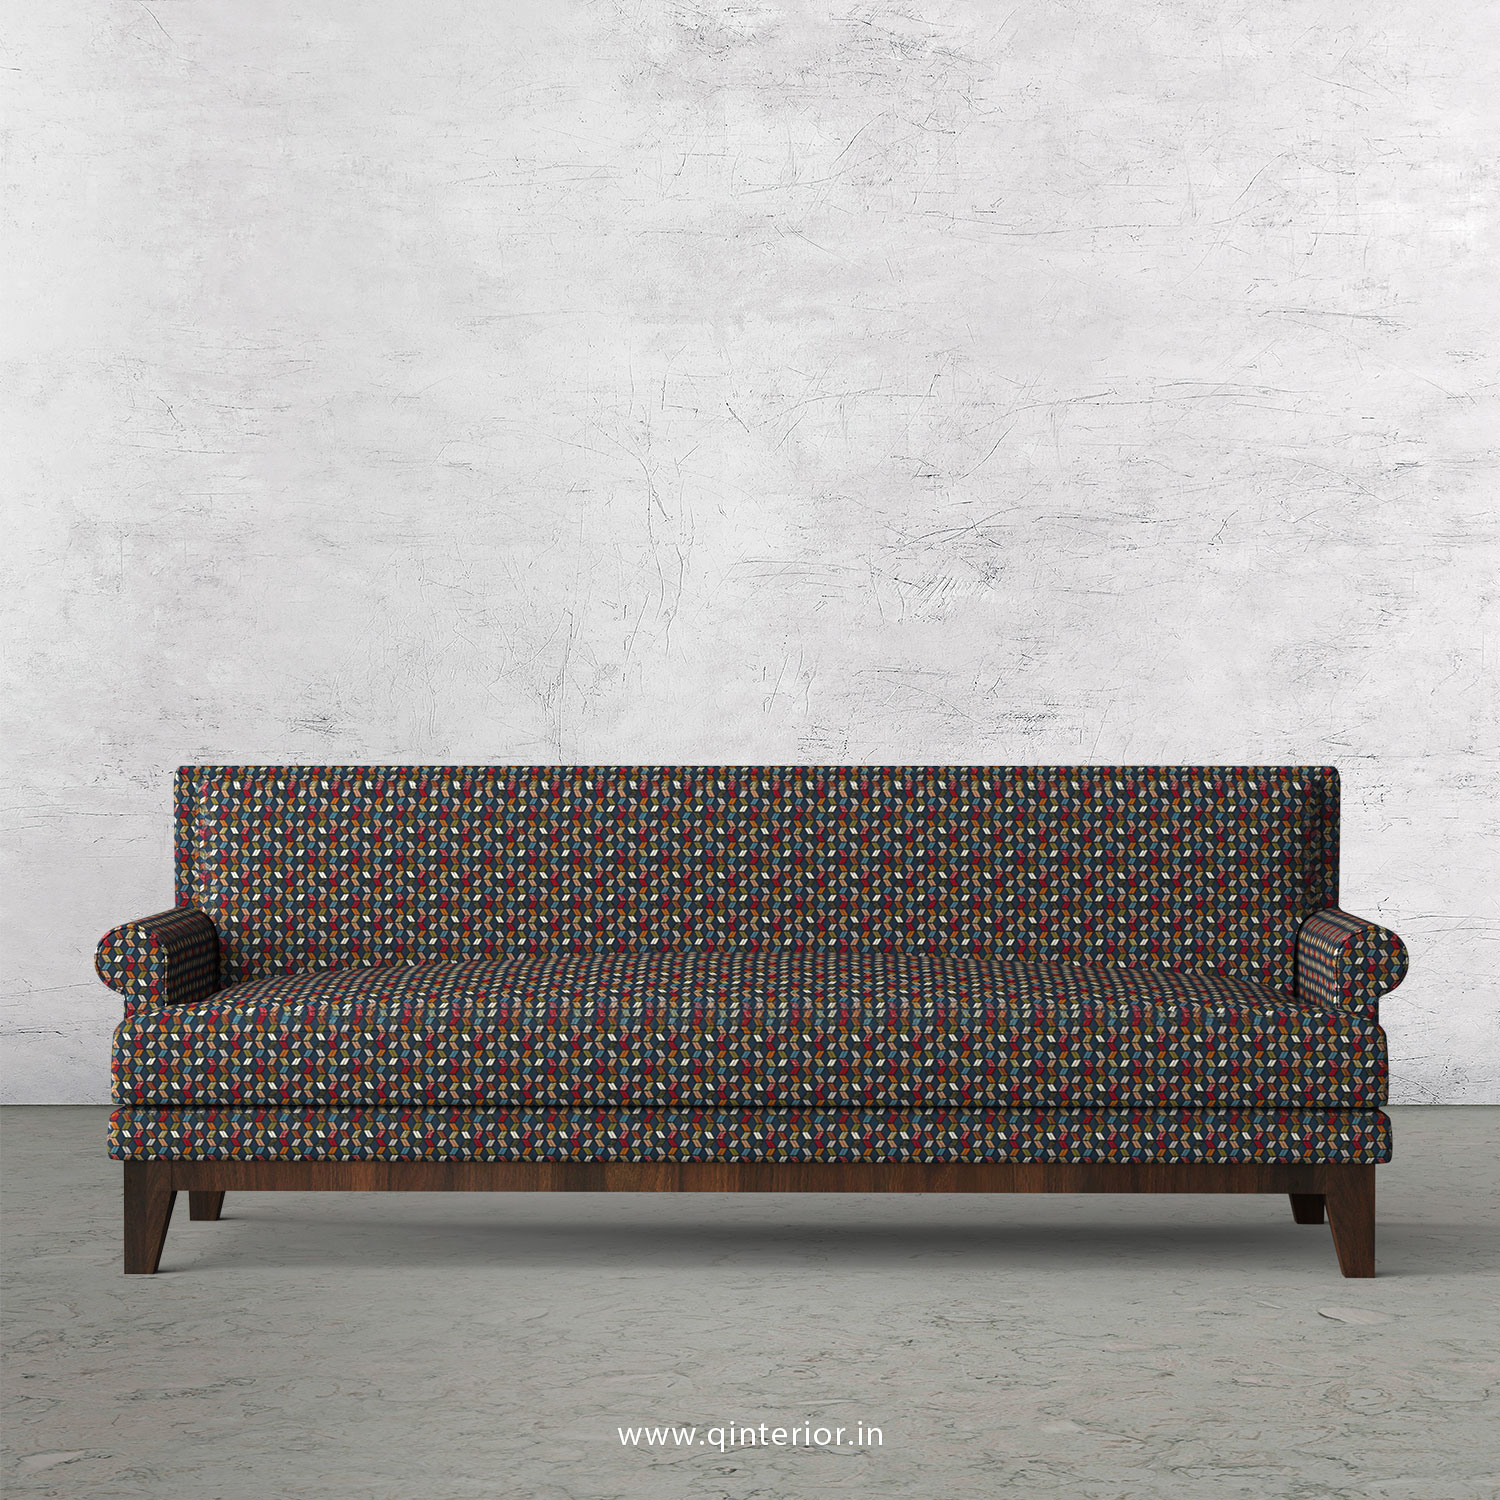 Aviana 3 Seater Sofa in Bargello Fabric - SFA001 BG04